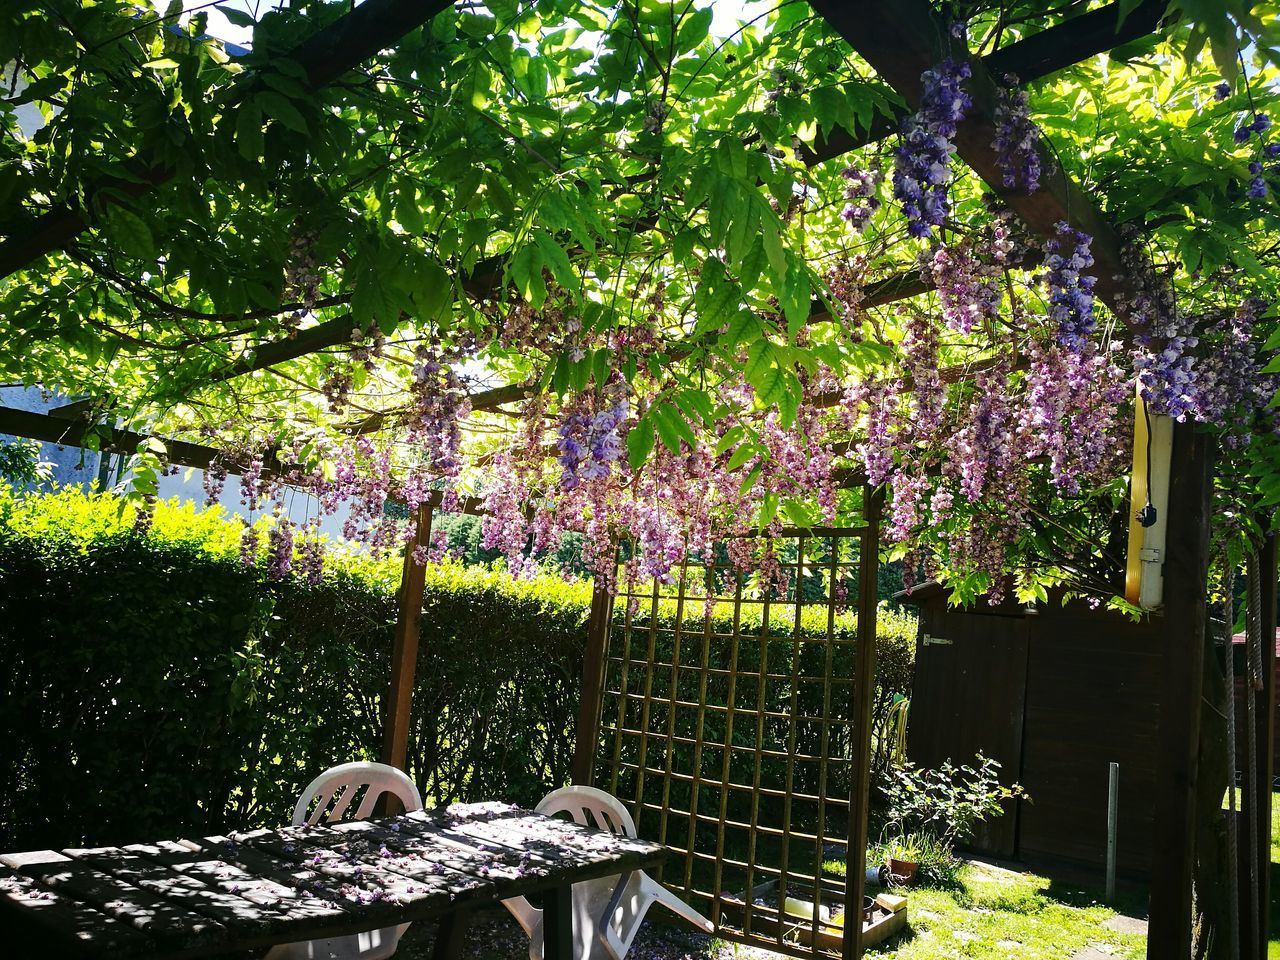 Tree Day Growth No People Outdoors Nature Beauty In Nature Branch Flower Architecture Freshness Glicine Gazebo Natura Beauty In Nature Nature Photography Primavera